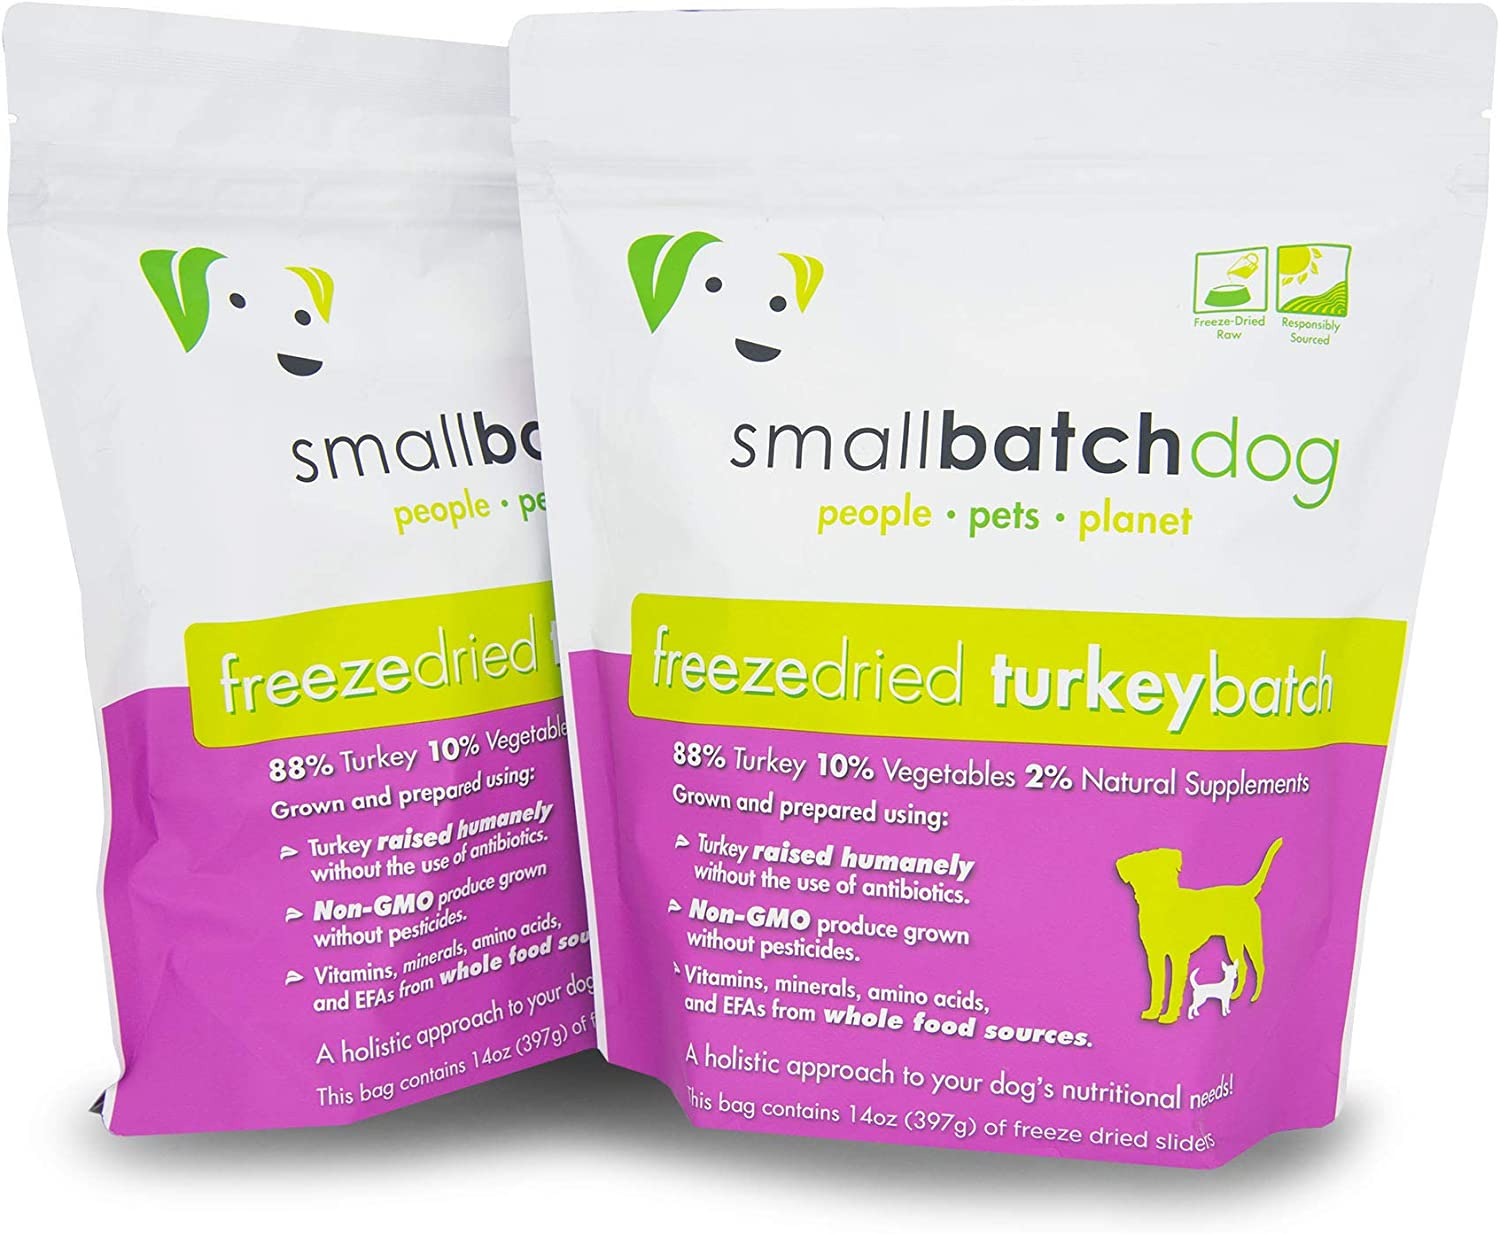 Smallbatch Pets Freeze-Dried Premium Raw Food Diet for Dogs, 2-Pack, Turkey Recipe, 14 oz in Each Bag (28 oz Total), Made in The USA, Organic Produce, Humanely Raised Meat, Hydrate and Serve Patties